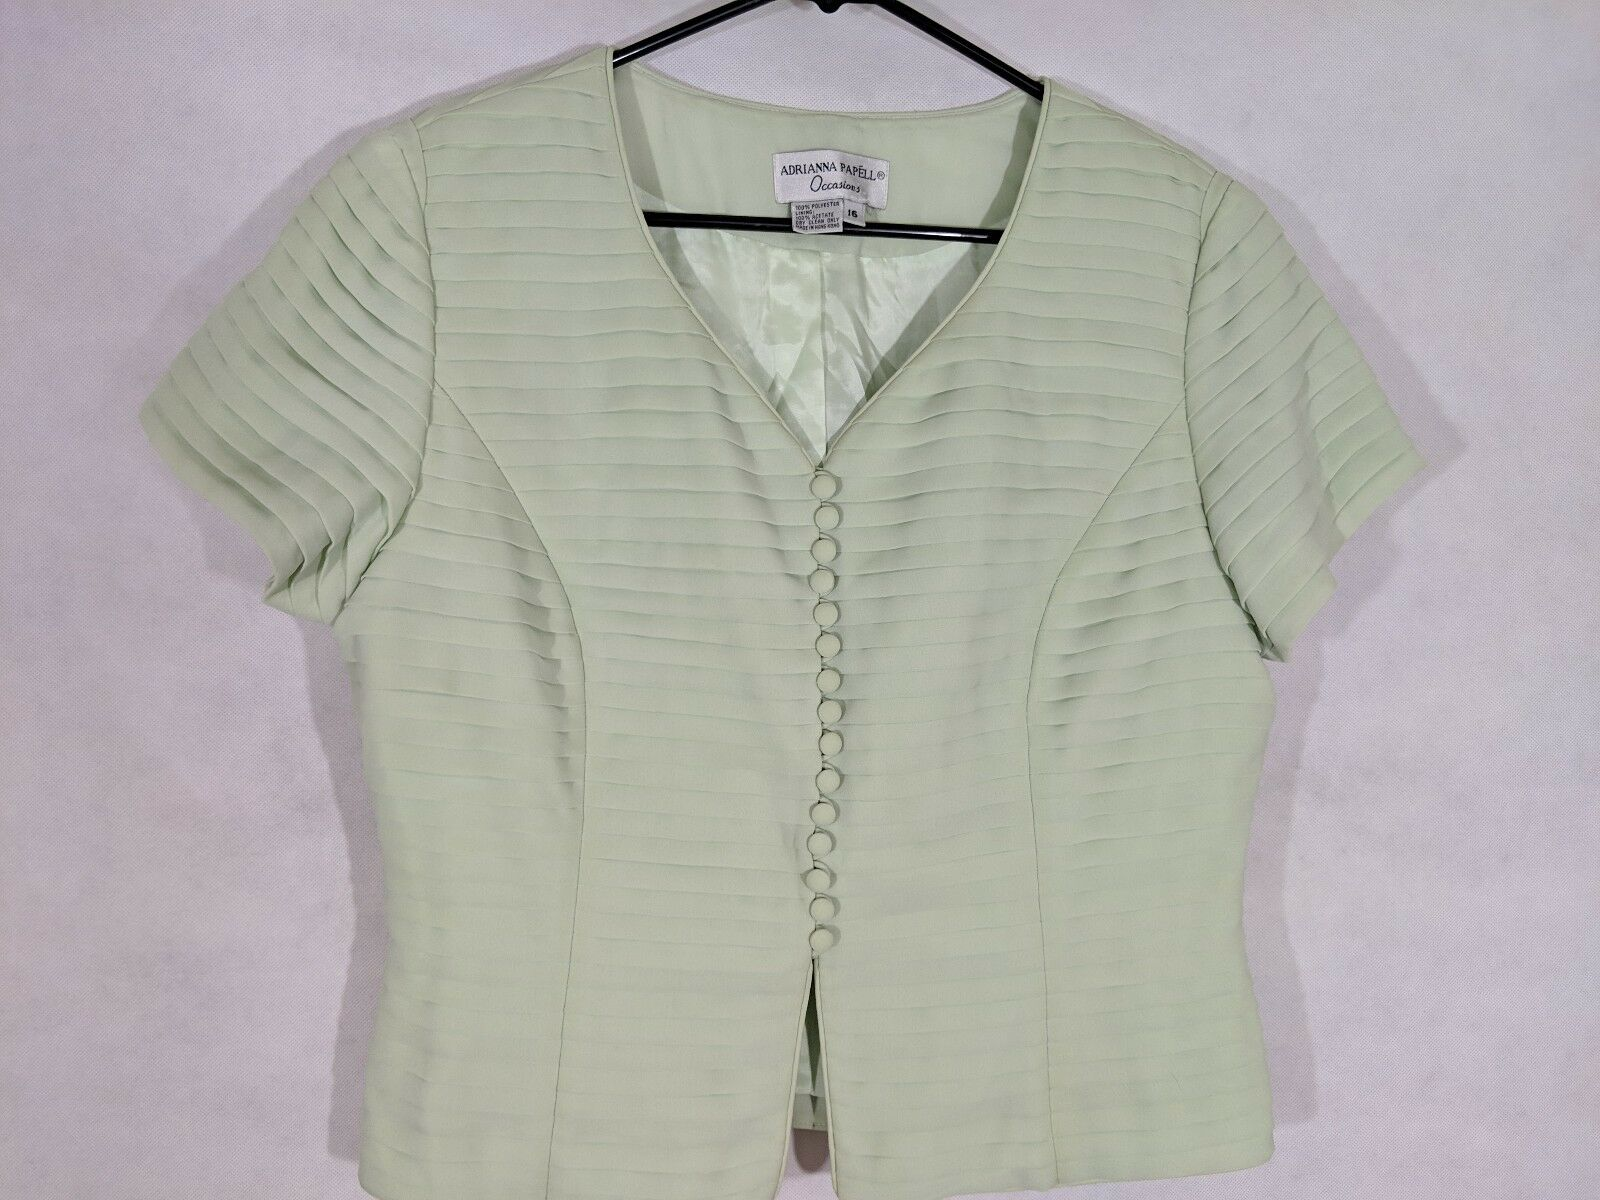 Blouse Adrianna Papell Special Occasions Green Formal Fancy Pleated Woman's 16